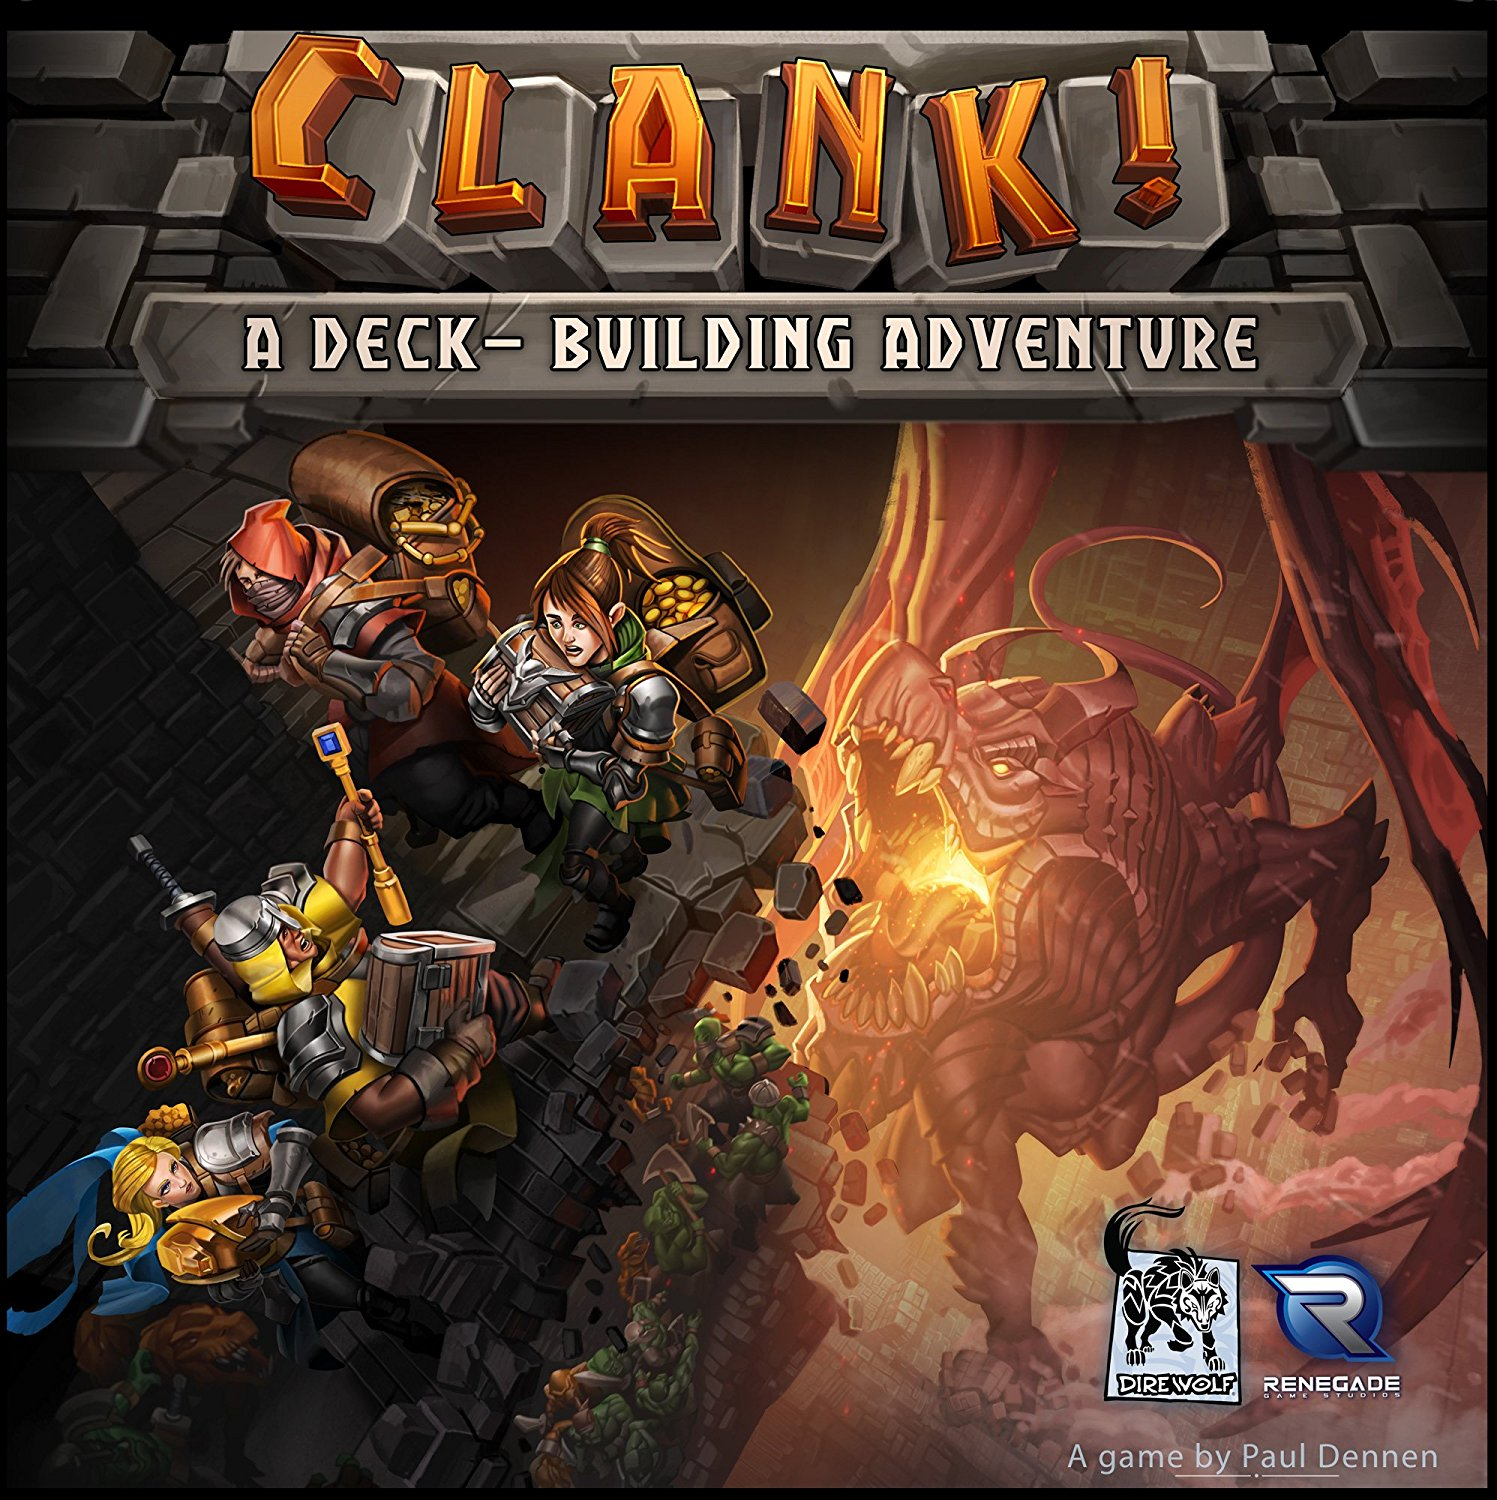 Clank! - This is an excellent game that incorporates deck building accompanied with a physical board game that is uniquely designed. Players find themselves exploring the depths of a dungeon, grabbing treasures, and making a mad dash for the door. The goal being to avoid making too much noise (aka